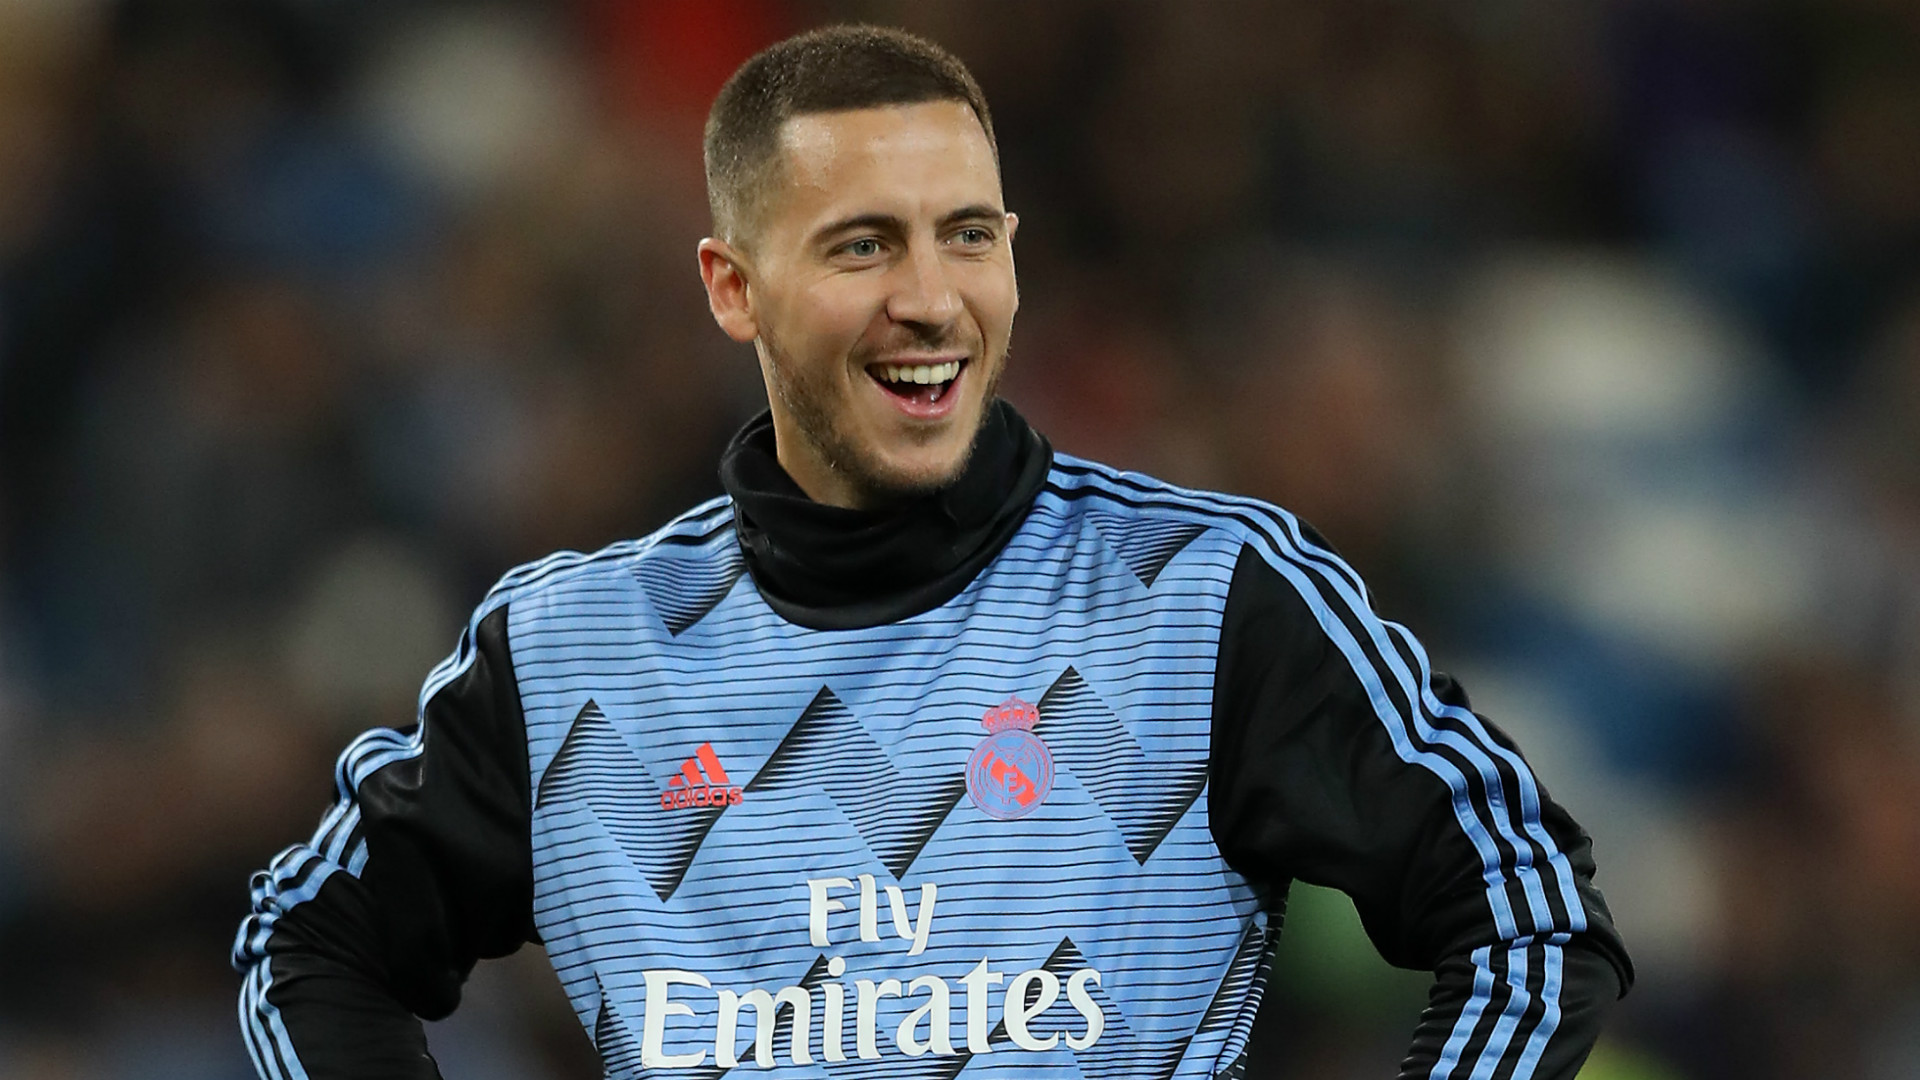 Madrid star Hazard recovering well from ankle surgery, says Belgium coach Martinez